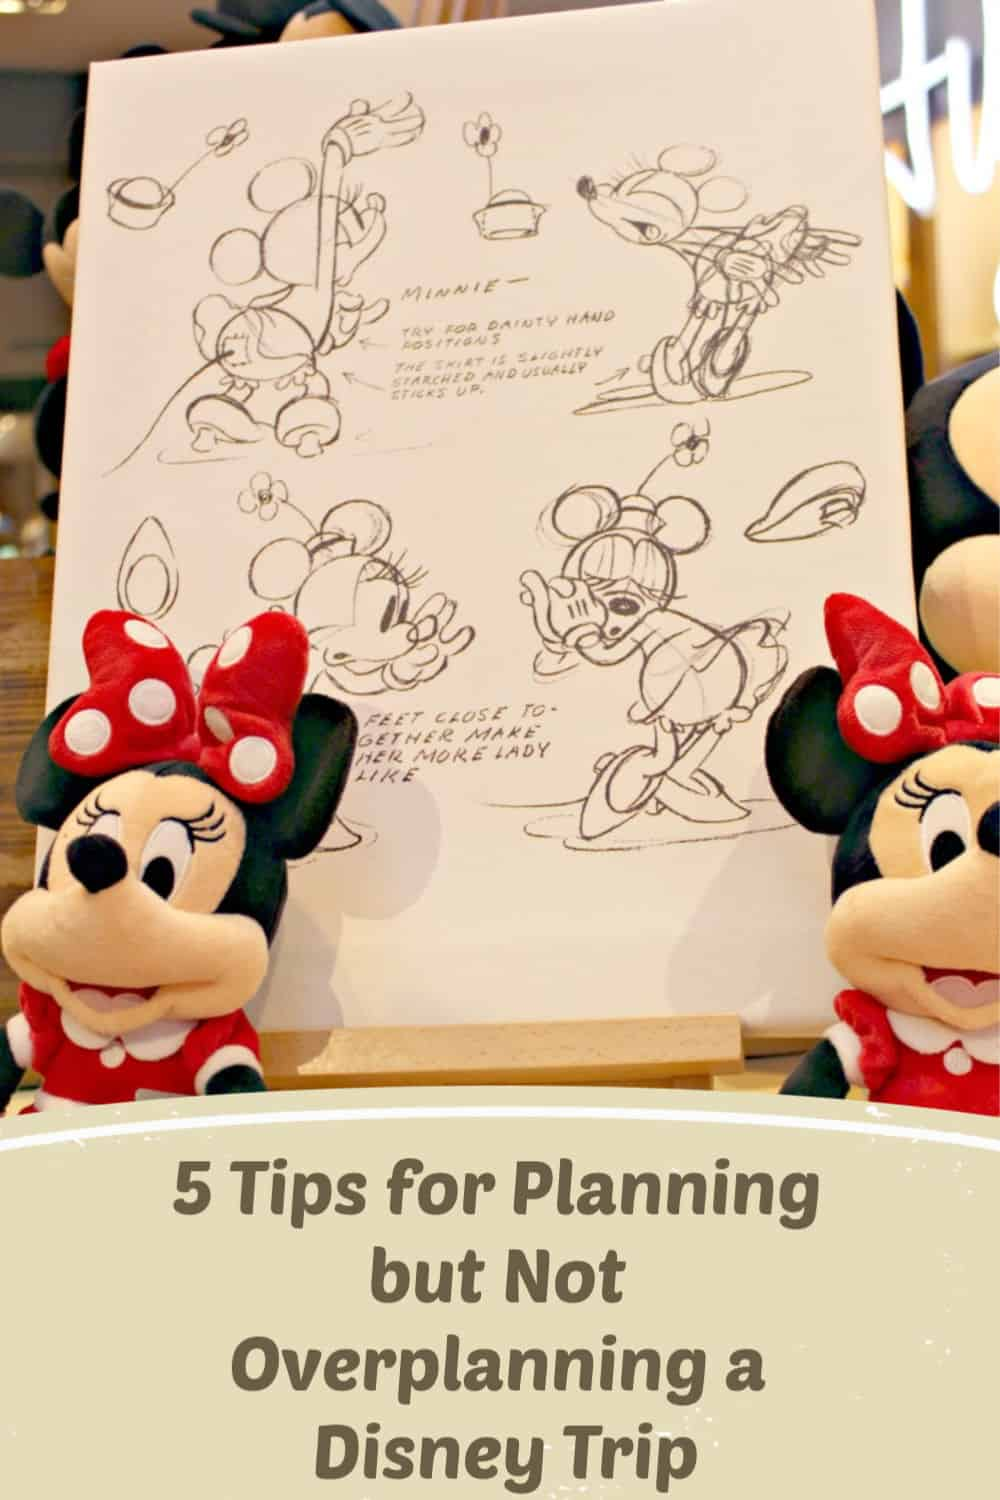 5 Tips for Planning but Not Overplanning a Disney Trip - Don't overplan your Disney trip with these tips to make the most of your Disney vacation